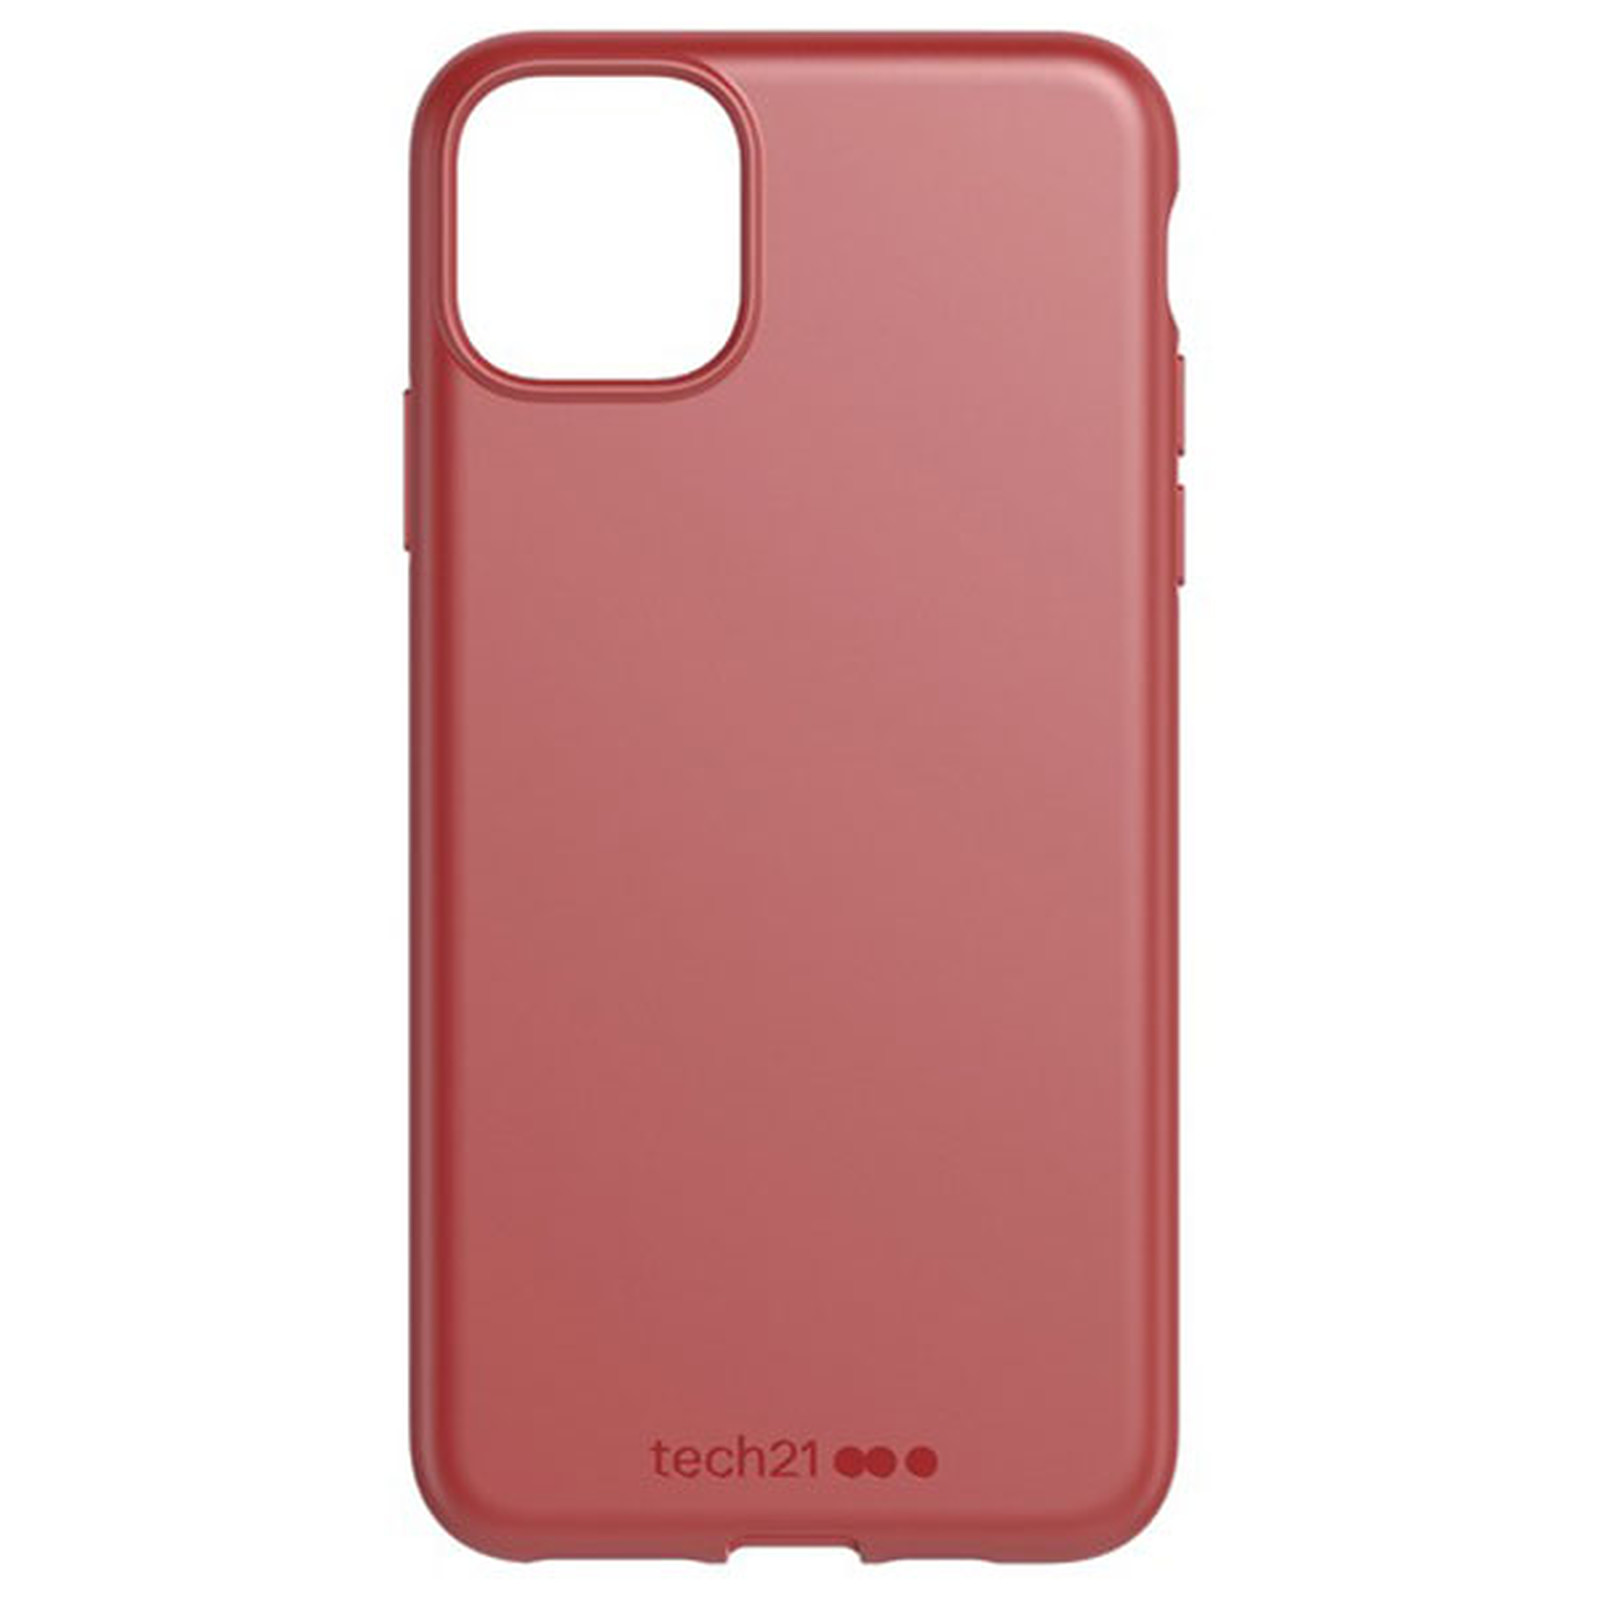 Tech21 Studio Colour Rouge Apple iPhone 11 Pro Max